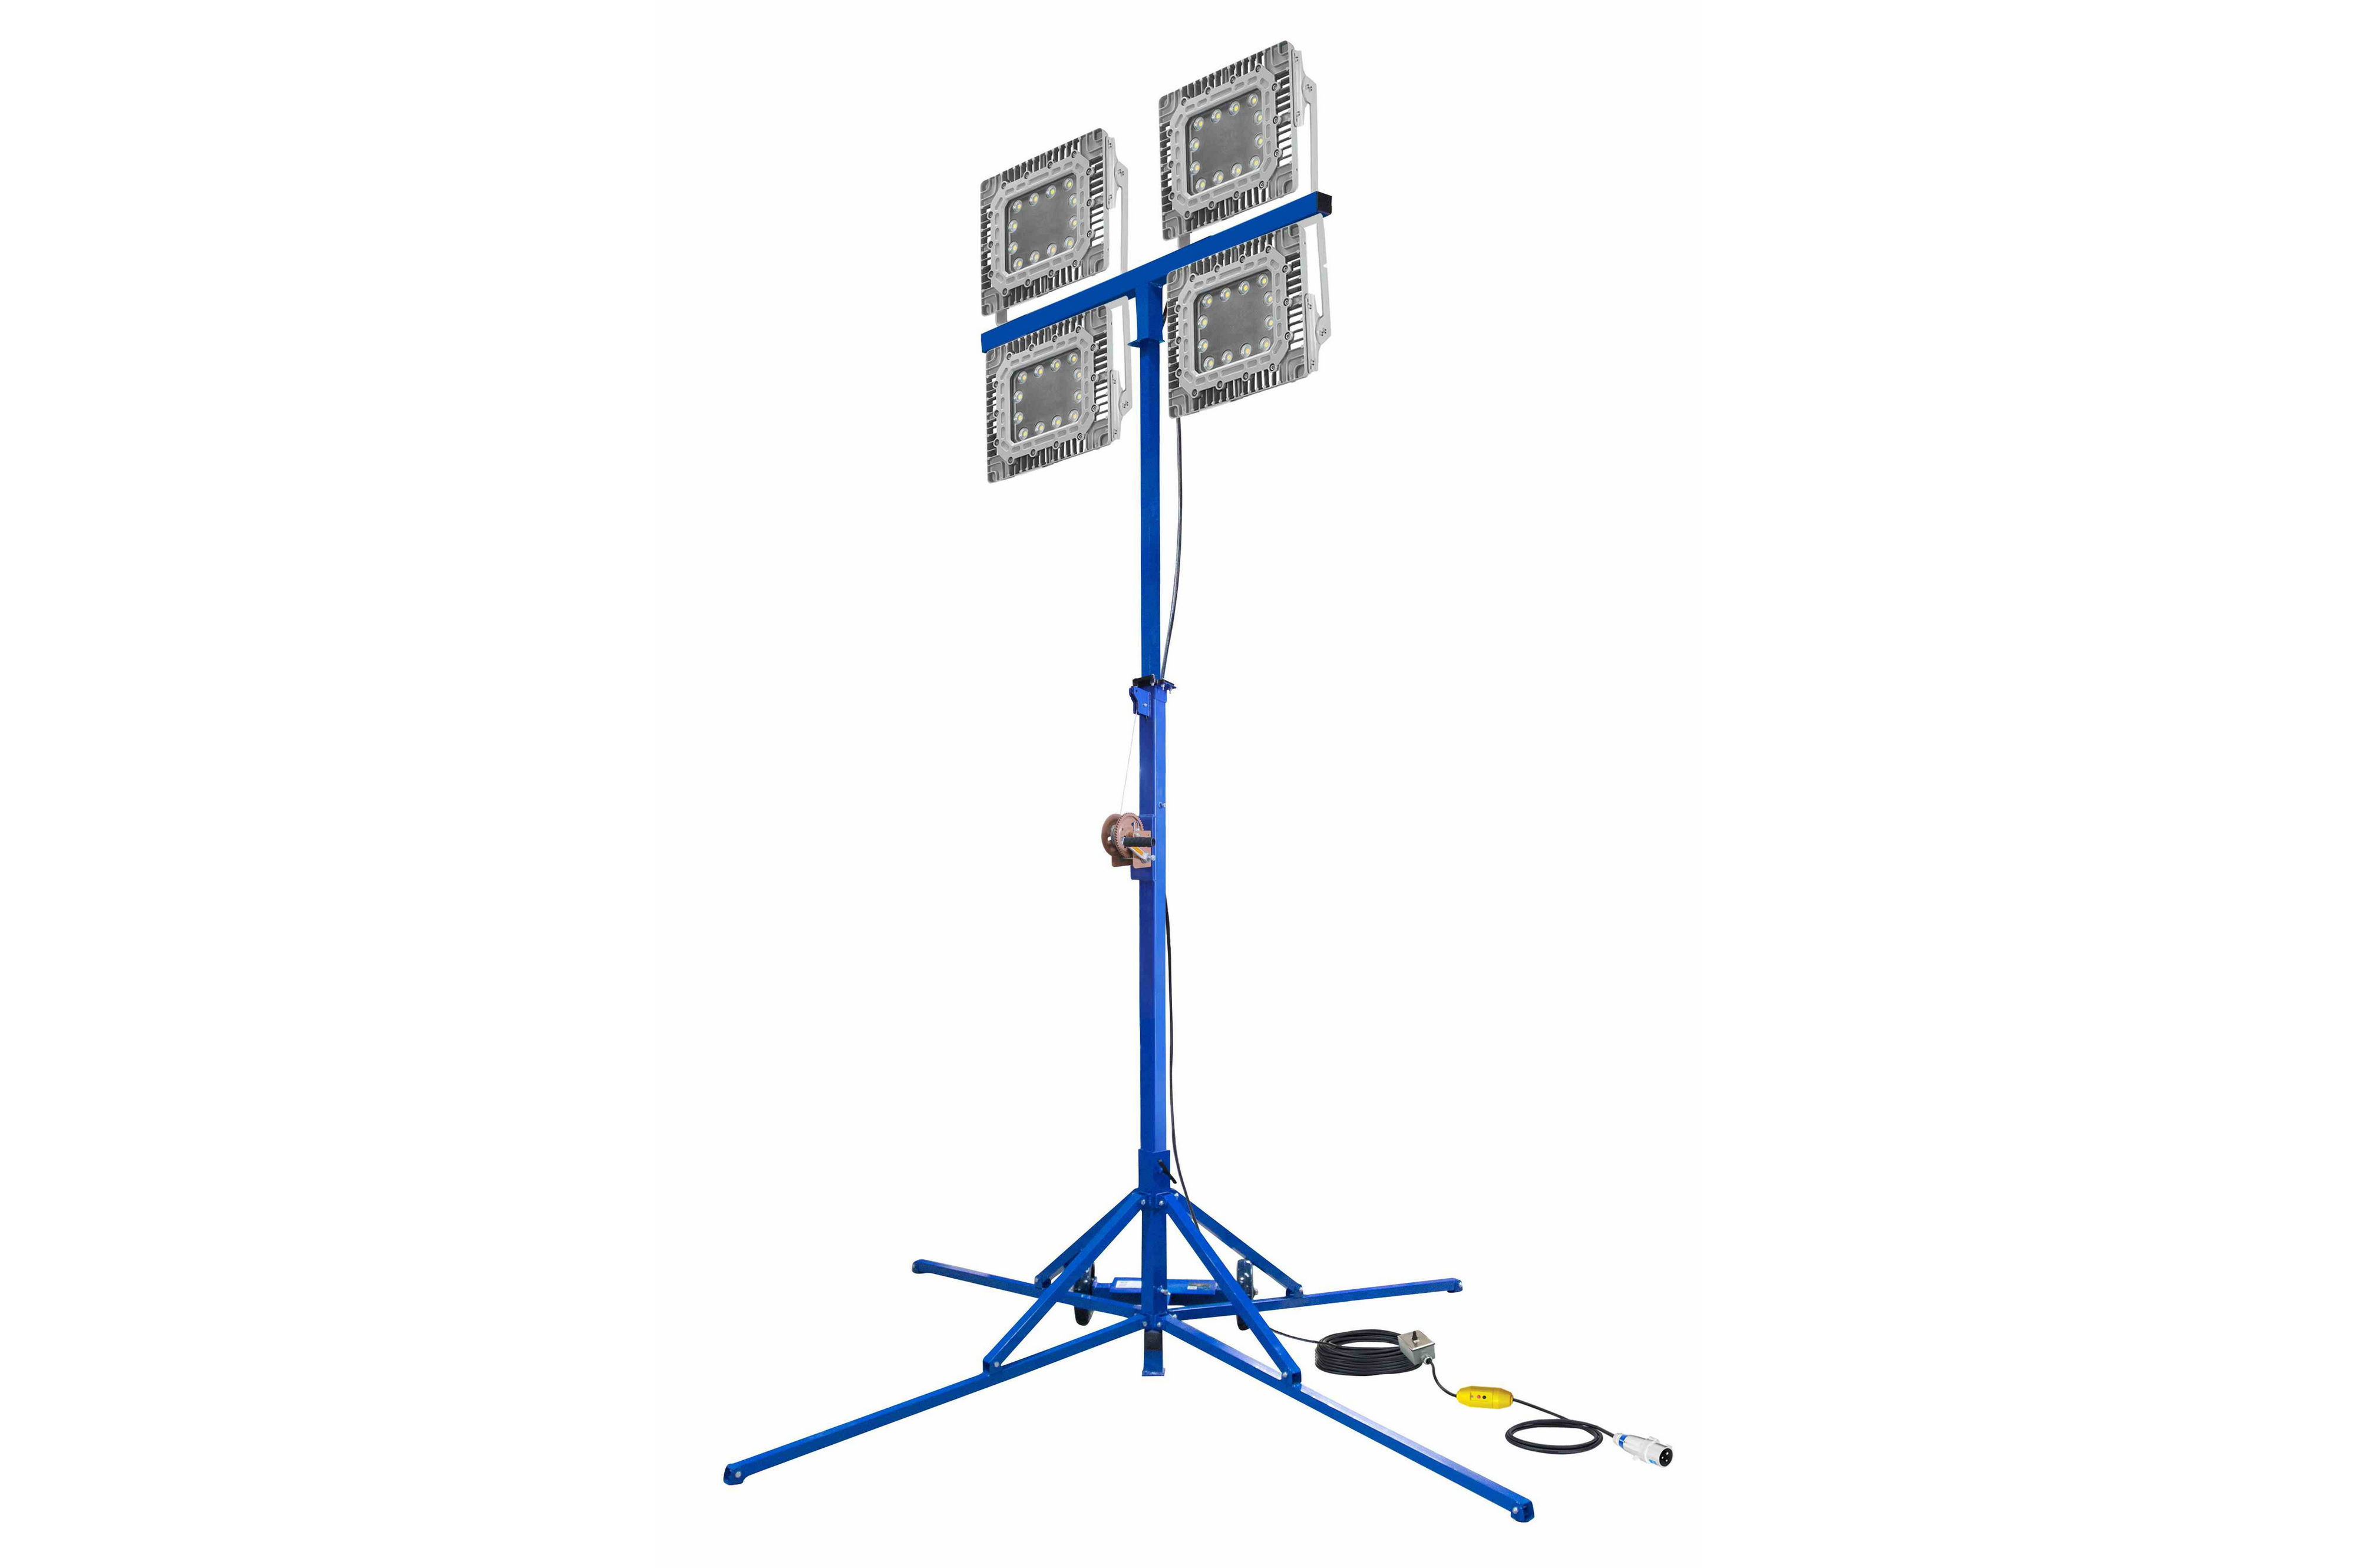 600w Explosion Proof Led Light Tower